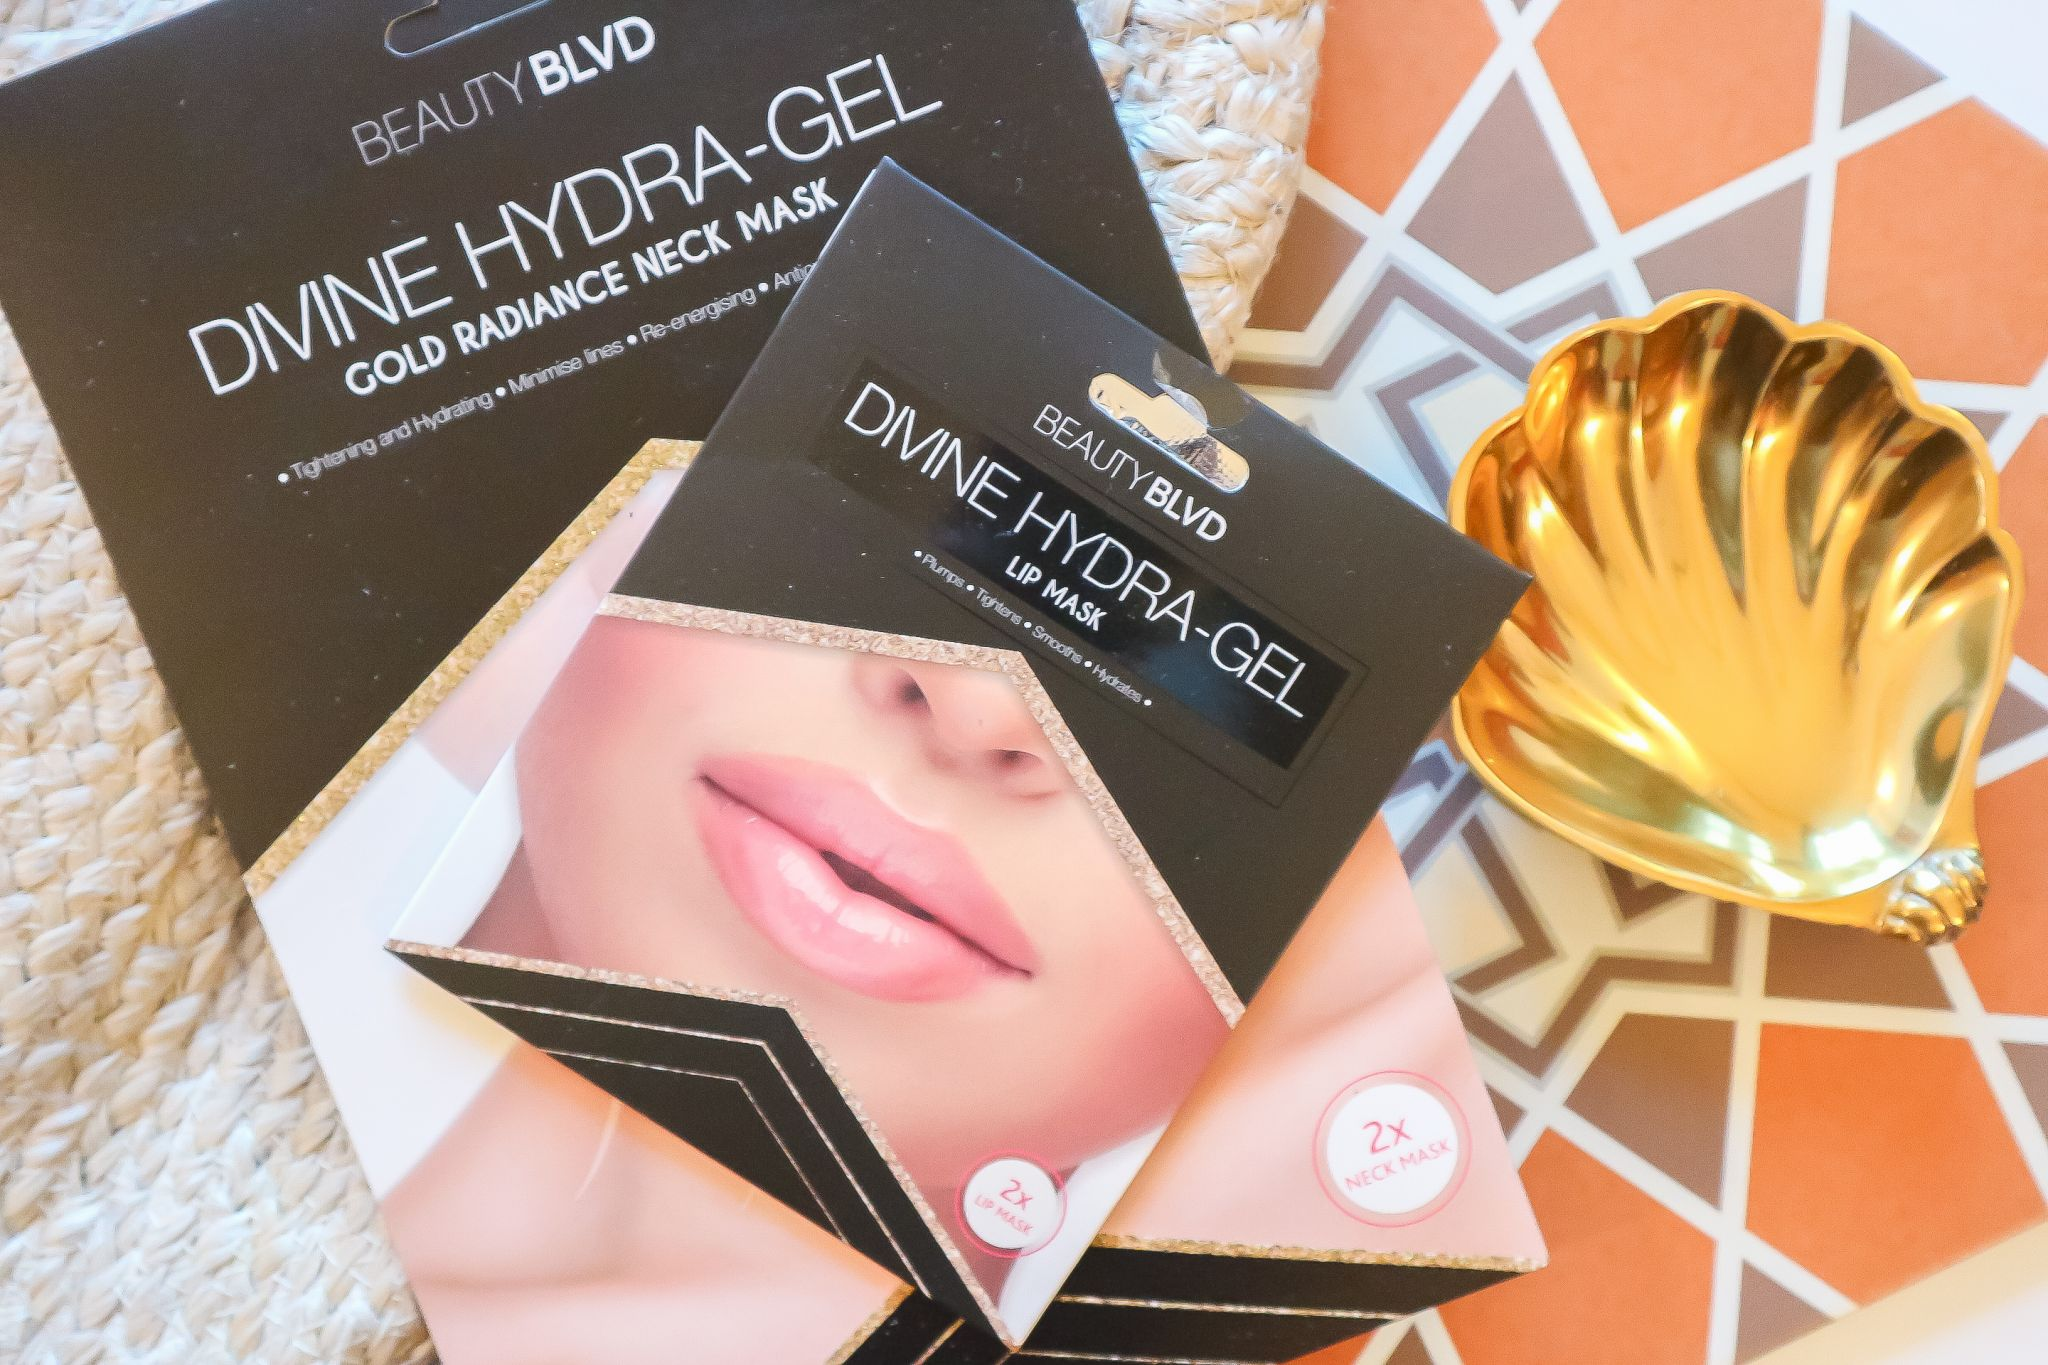 Beauty Boulevard Divine Hydragel Masks